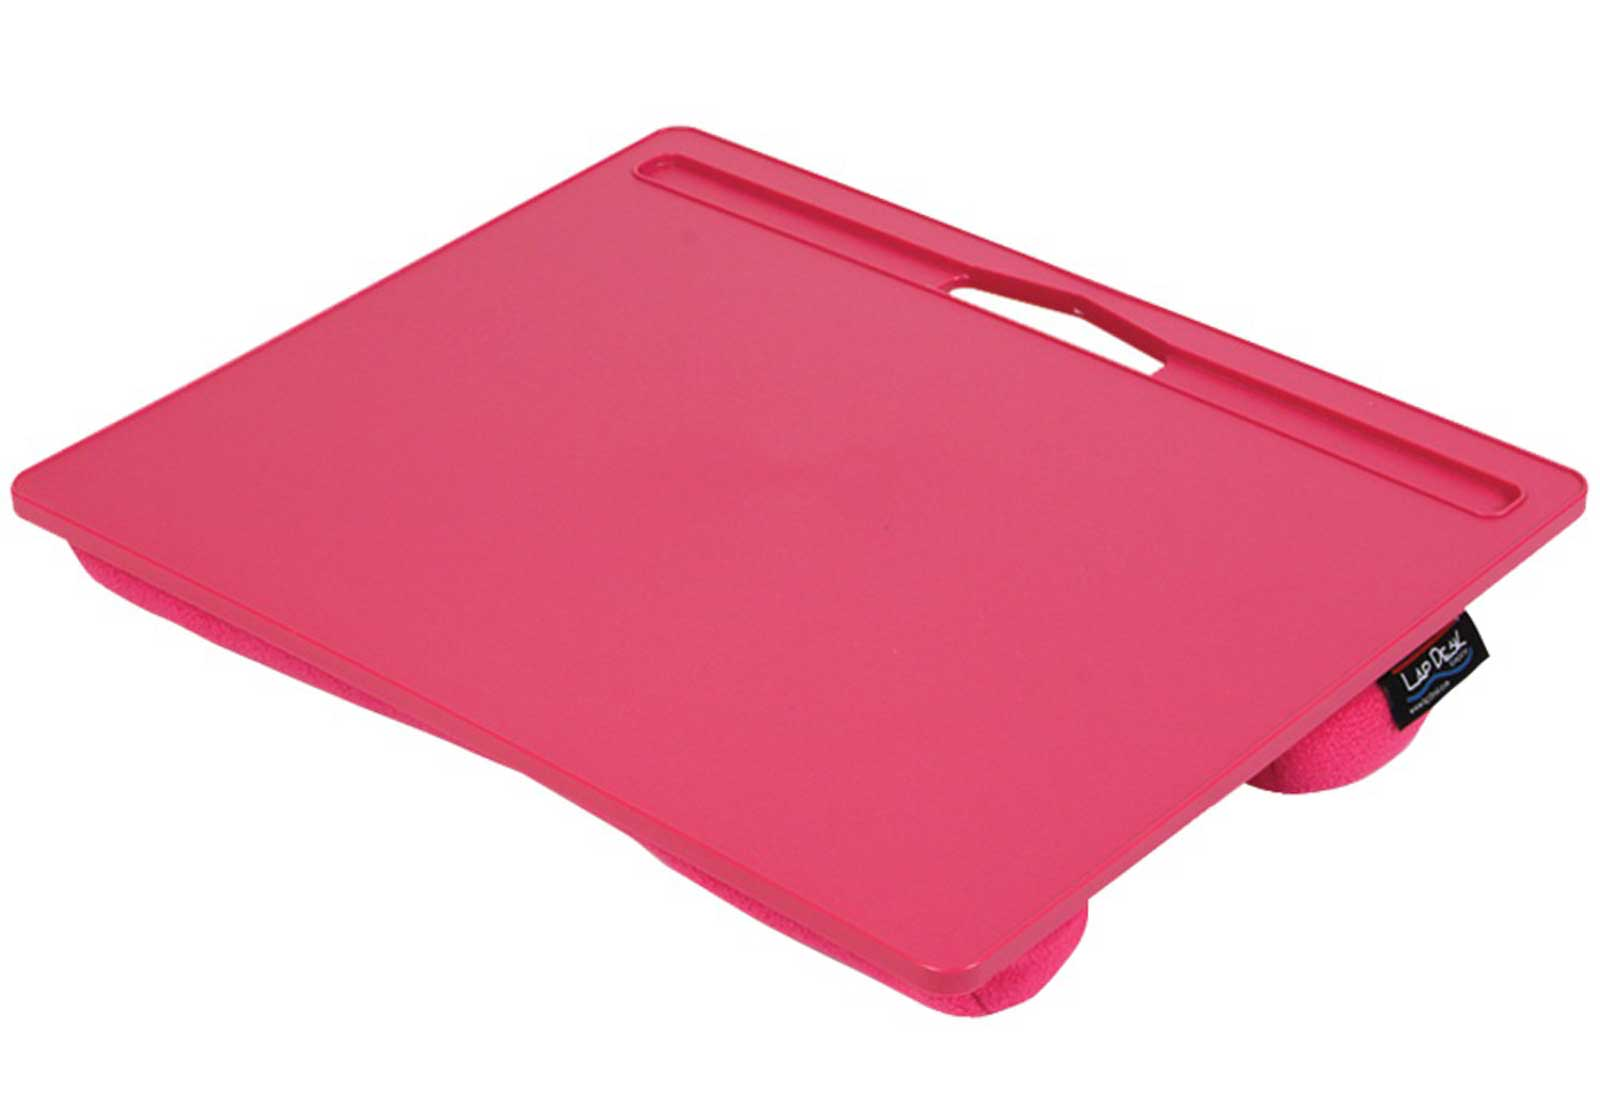 student notebook pink lap desk for kids